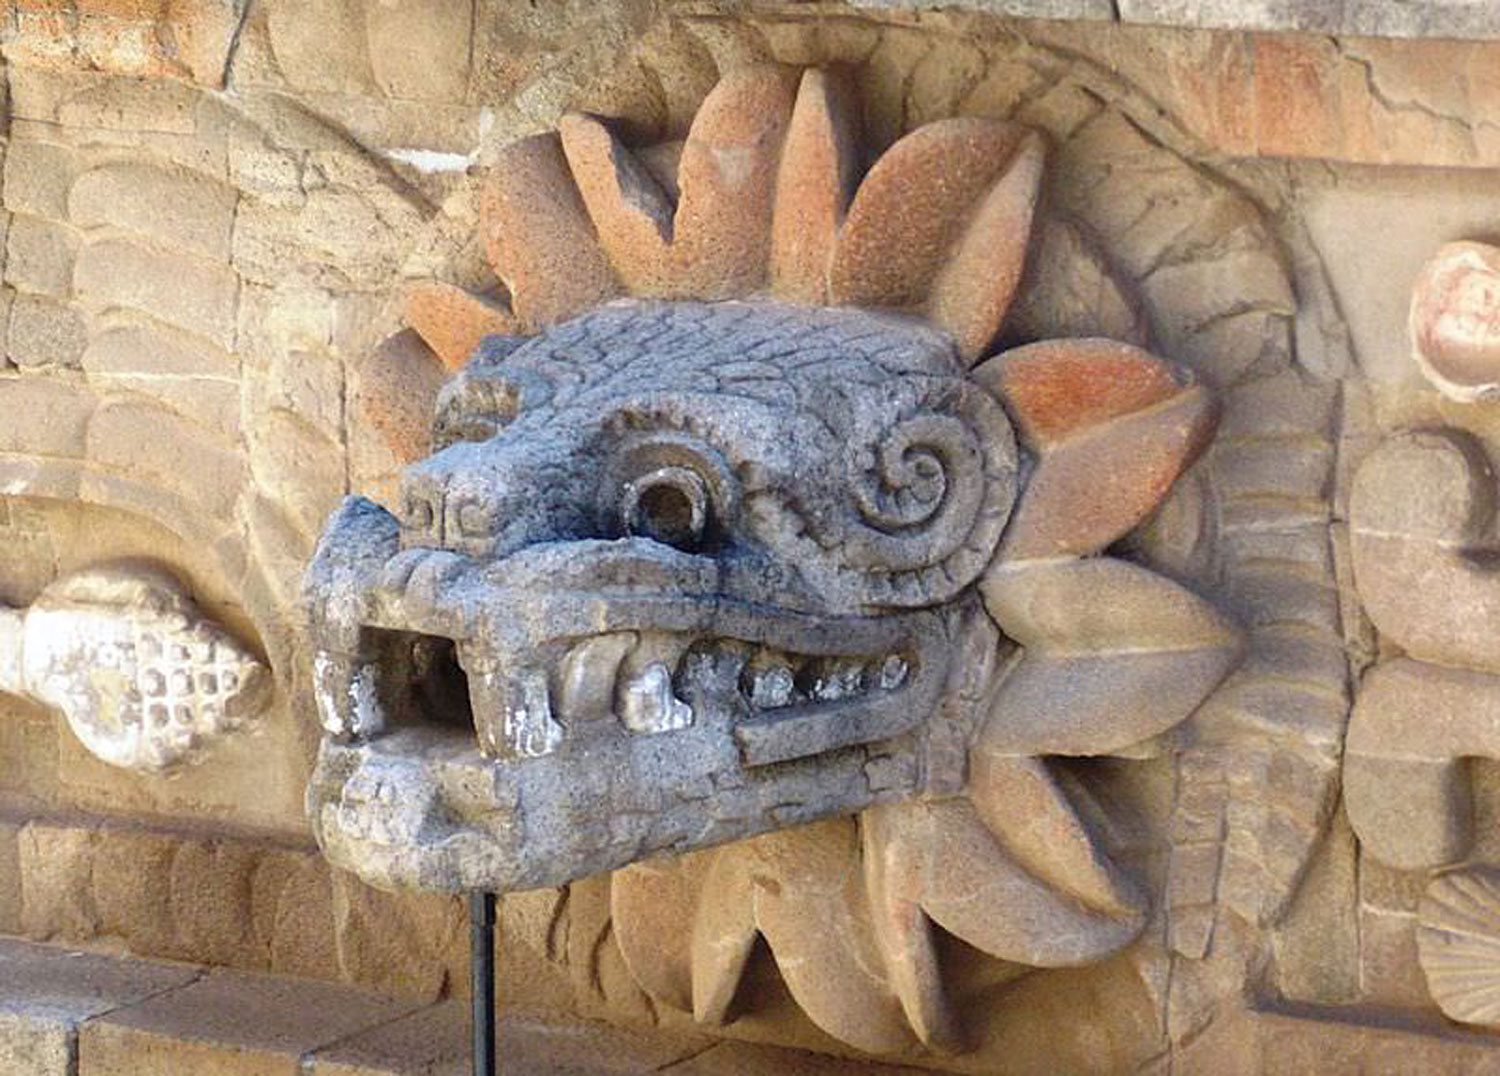 Serpent with feathers in Teotihuacán representing God Quetzalcóatl. Credit: Pinterest.